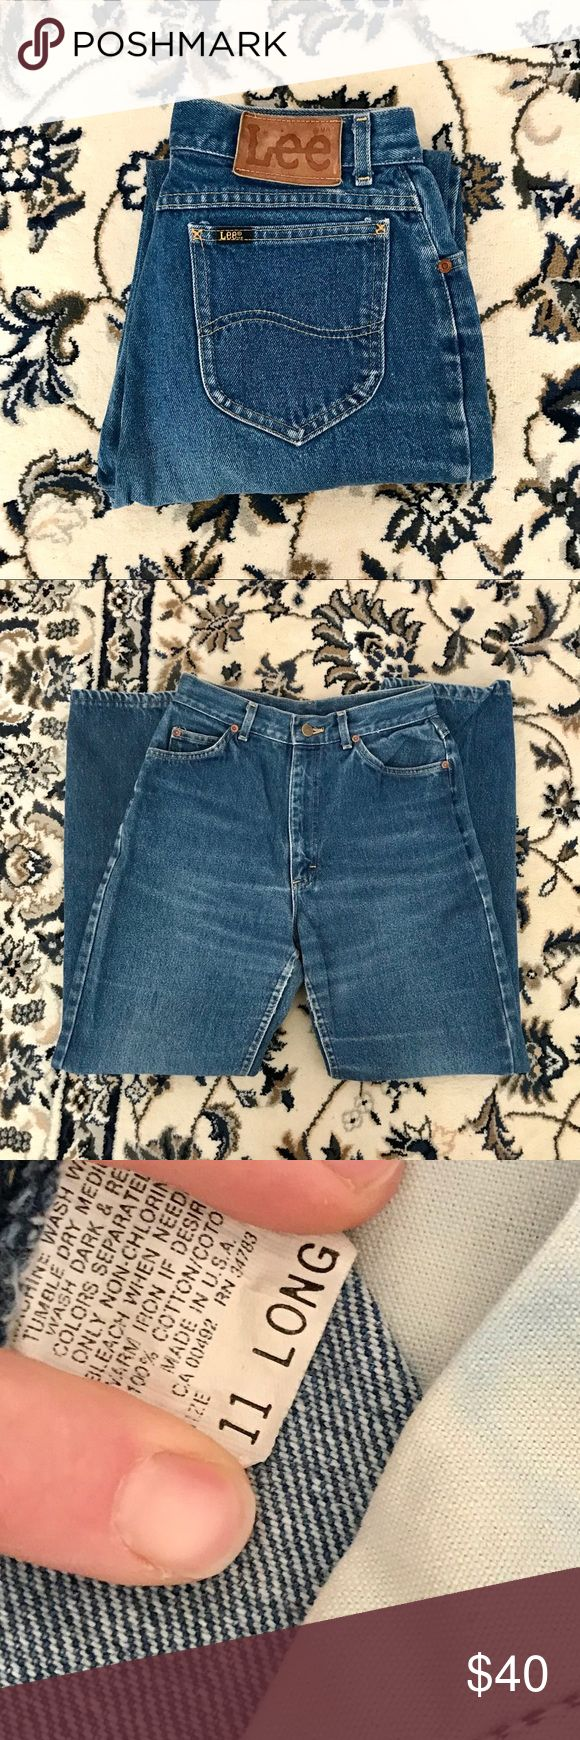 Vintage Lee Jeans Vintage high waist Lee Jeans  Great condition ⚡️ Size 11 Long Lee Jeans Straight Leg